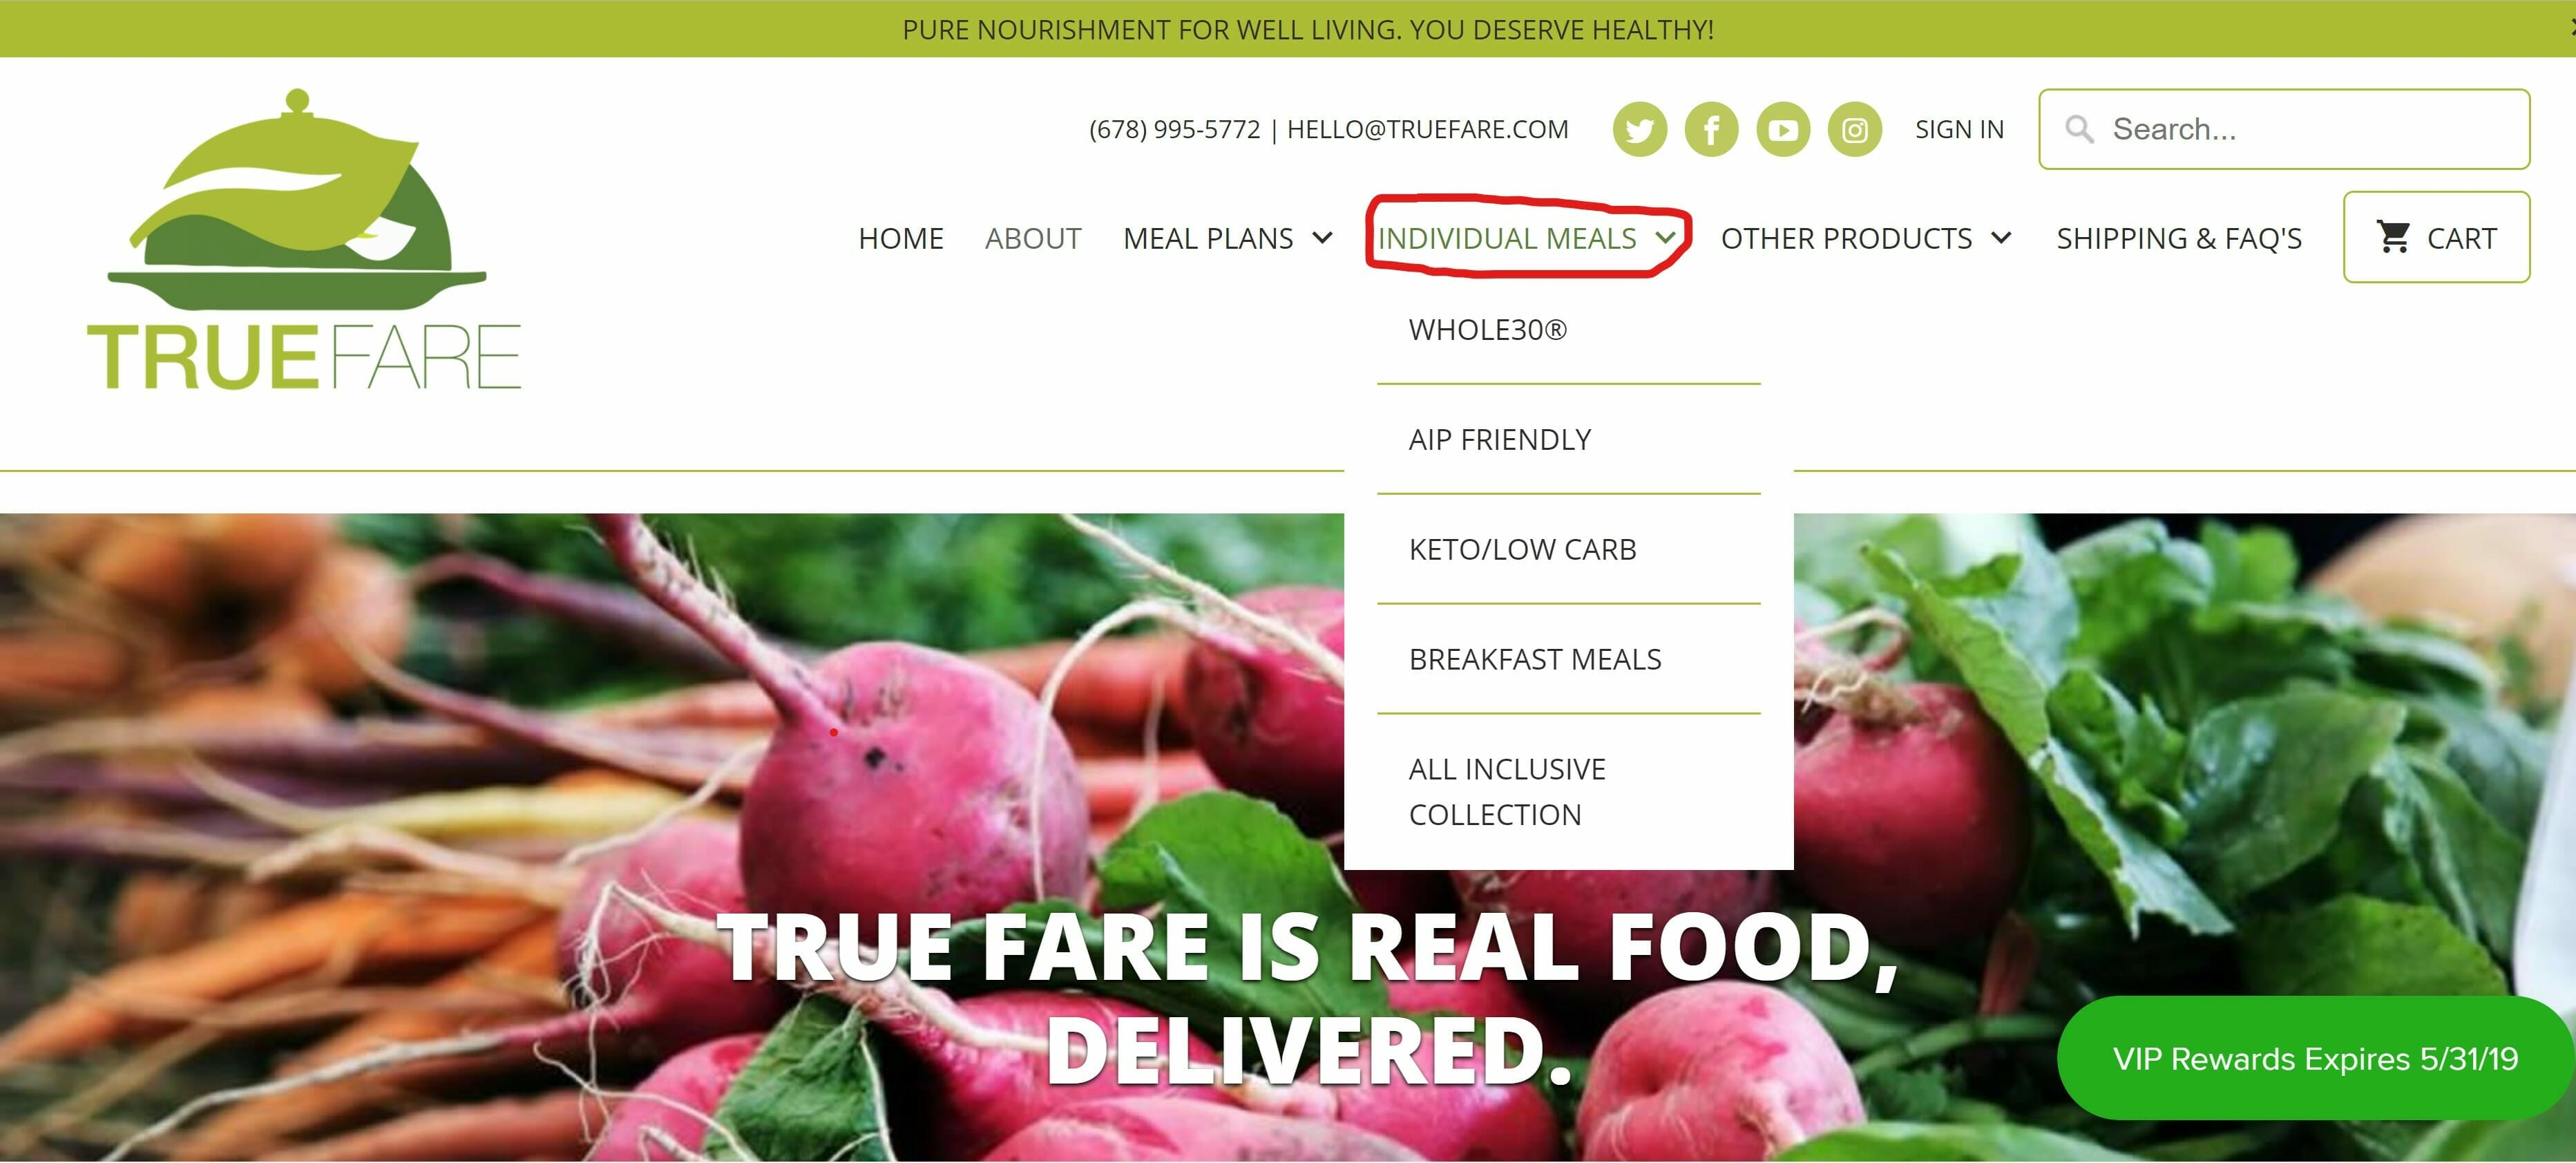 True Fare offers individual meals